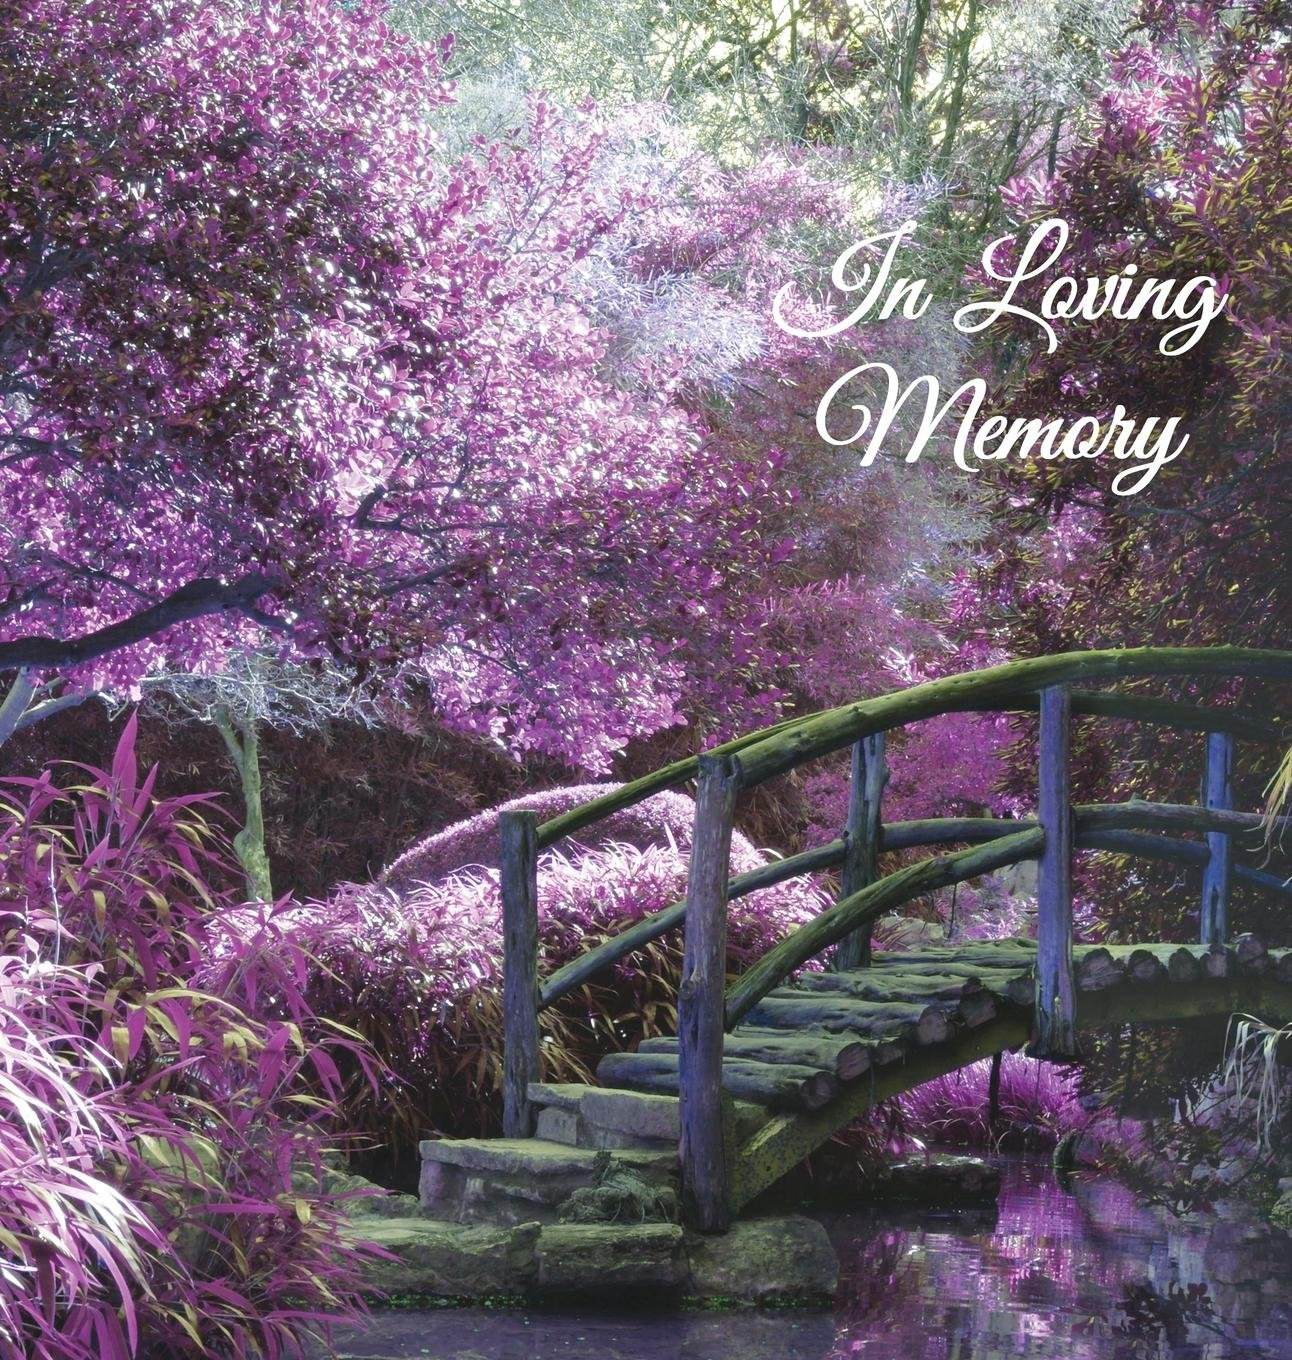 In Loving Memory Funeral Guest Book, Memorial Guest Book, Condolence Book, Remembrance Book for Funerals or Wake, Memorial Service Guest Book: A ... the Family. Hard Cover with a Gloss Finish Hardcover – March 10, 2017 Angelis Publications 0995694966 Grief